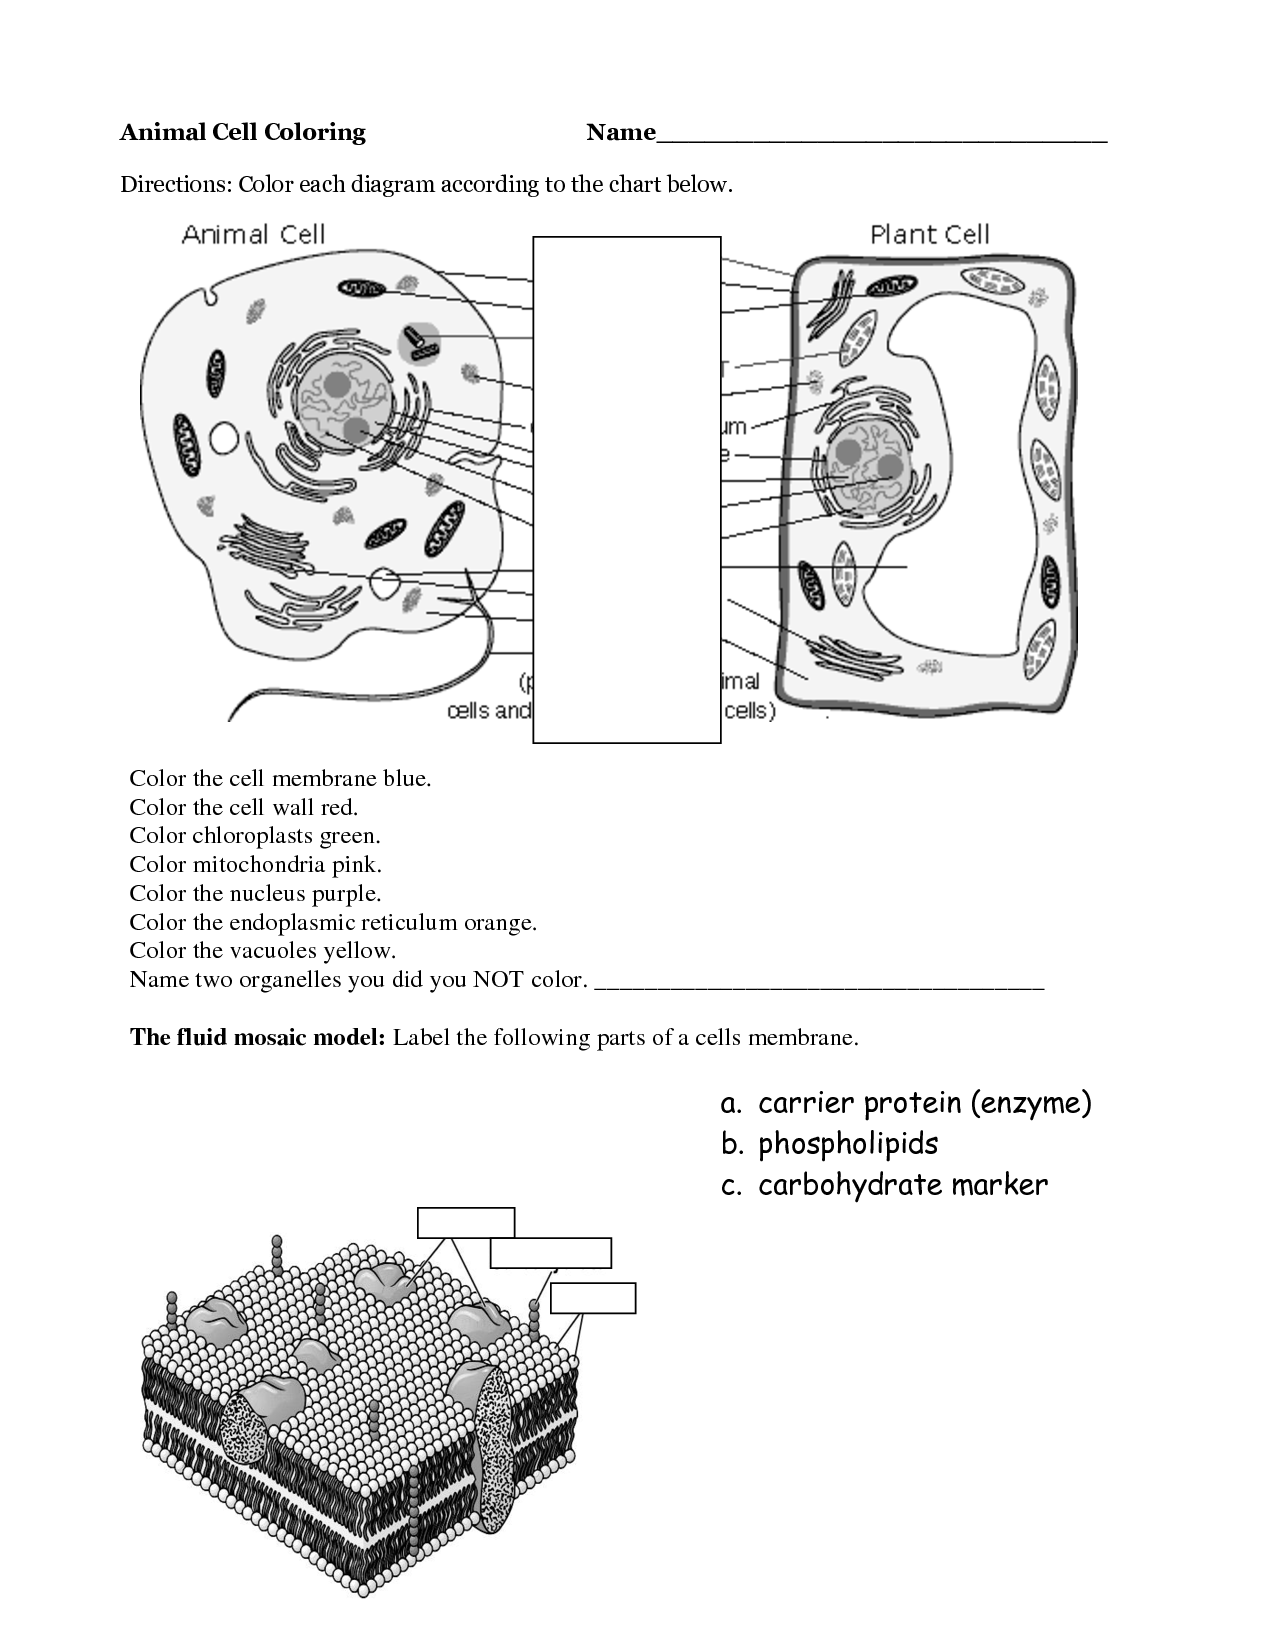 Worksheet On Plant And Animal Cells